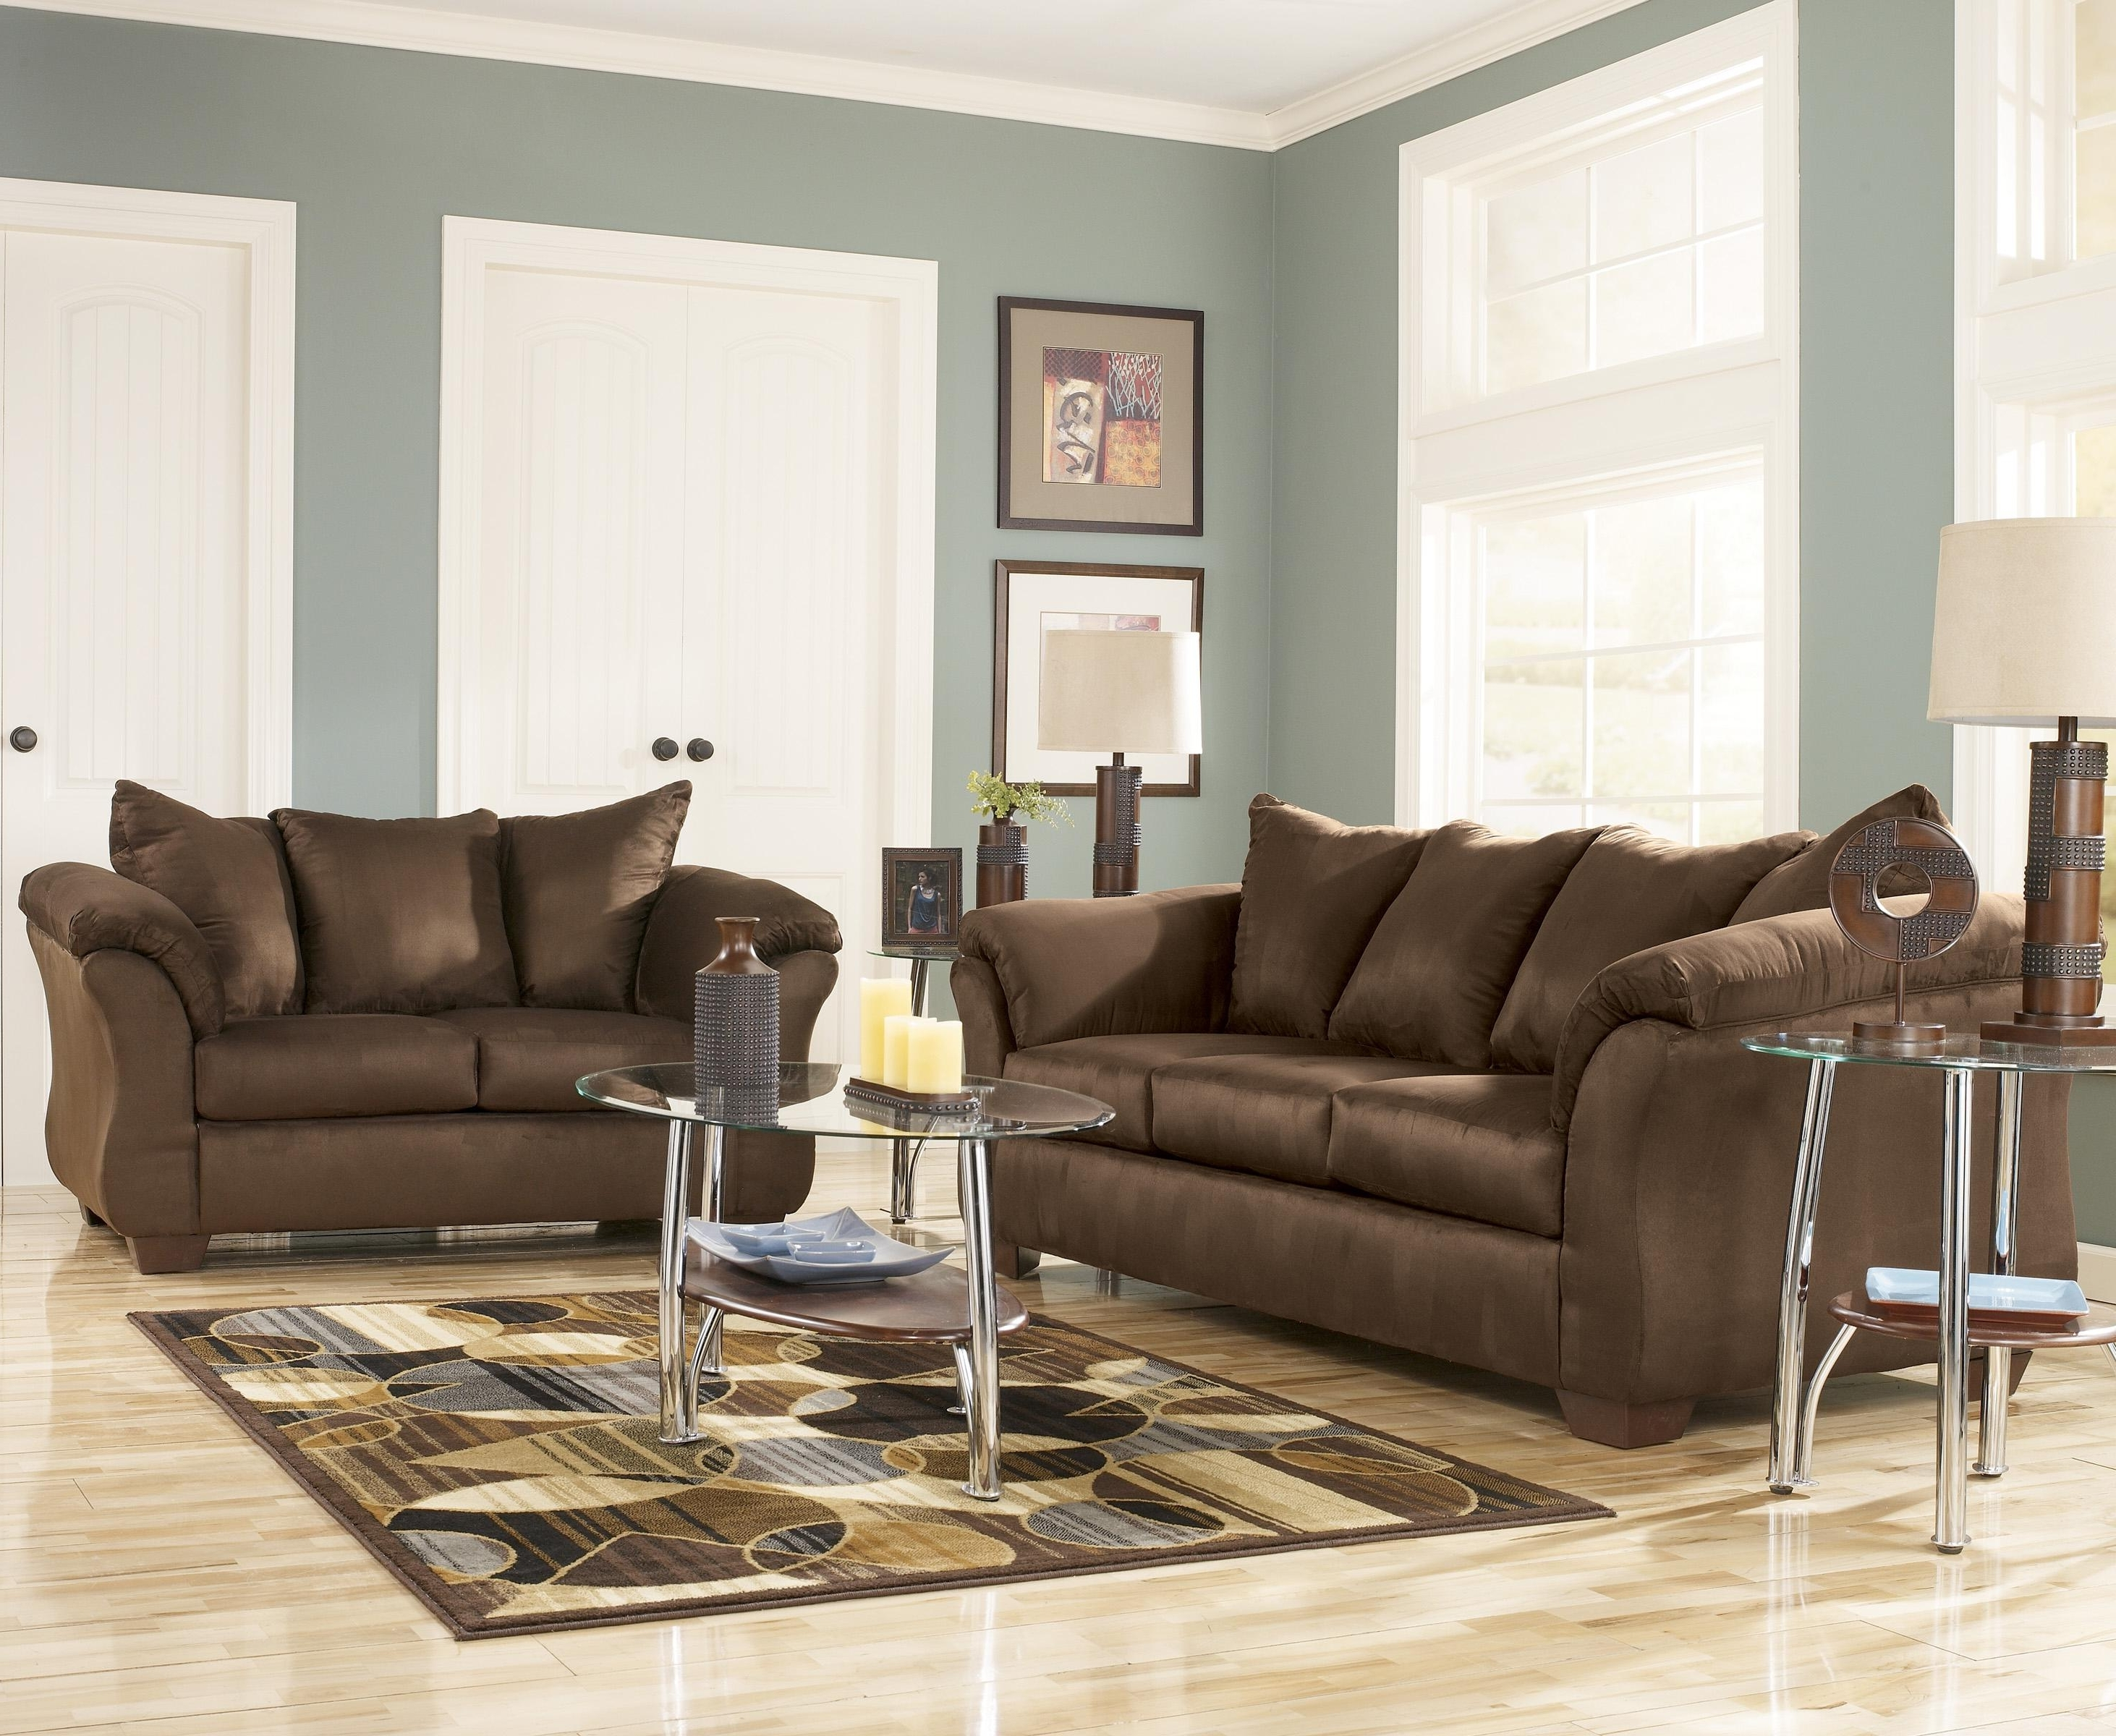 Newest 102x102 Sectional Sofas Within Signature Designashley Darcy – Cafe Contemporary Sectional (View 15 of 20)